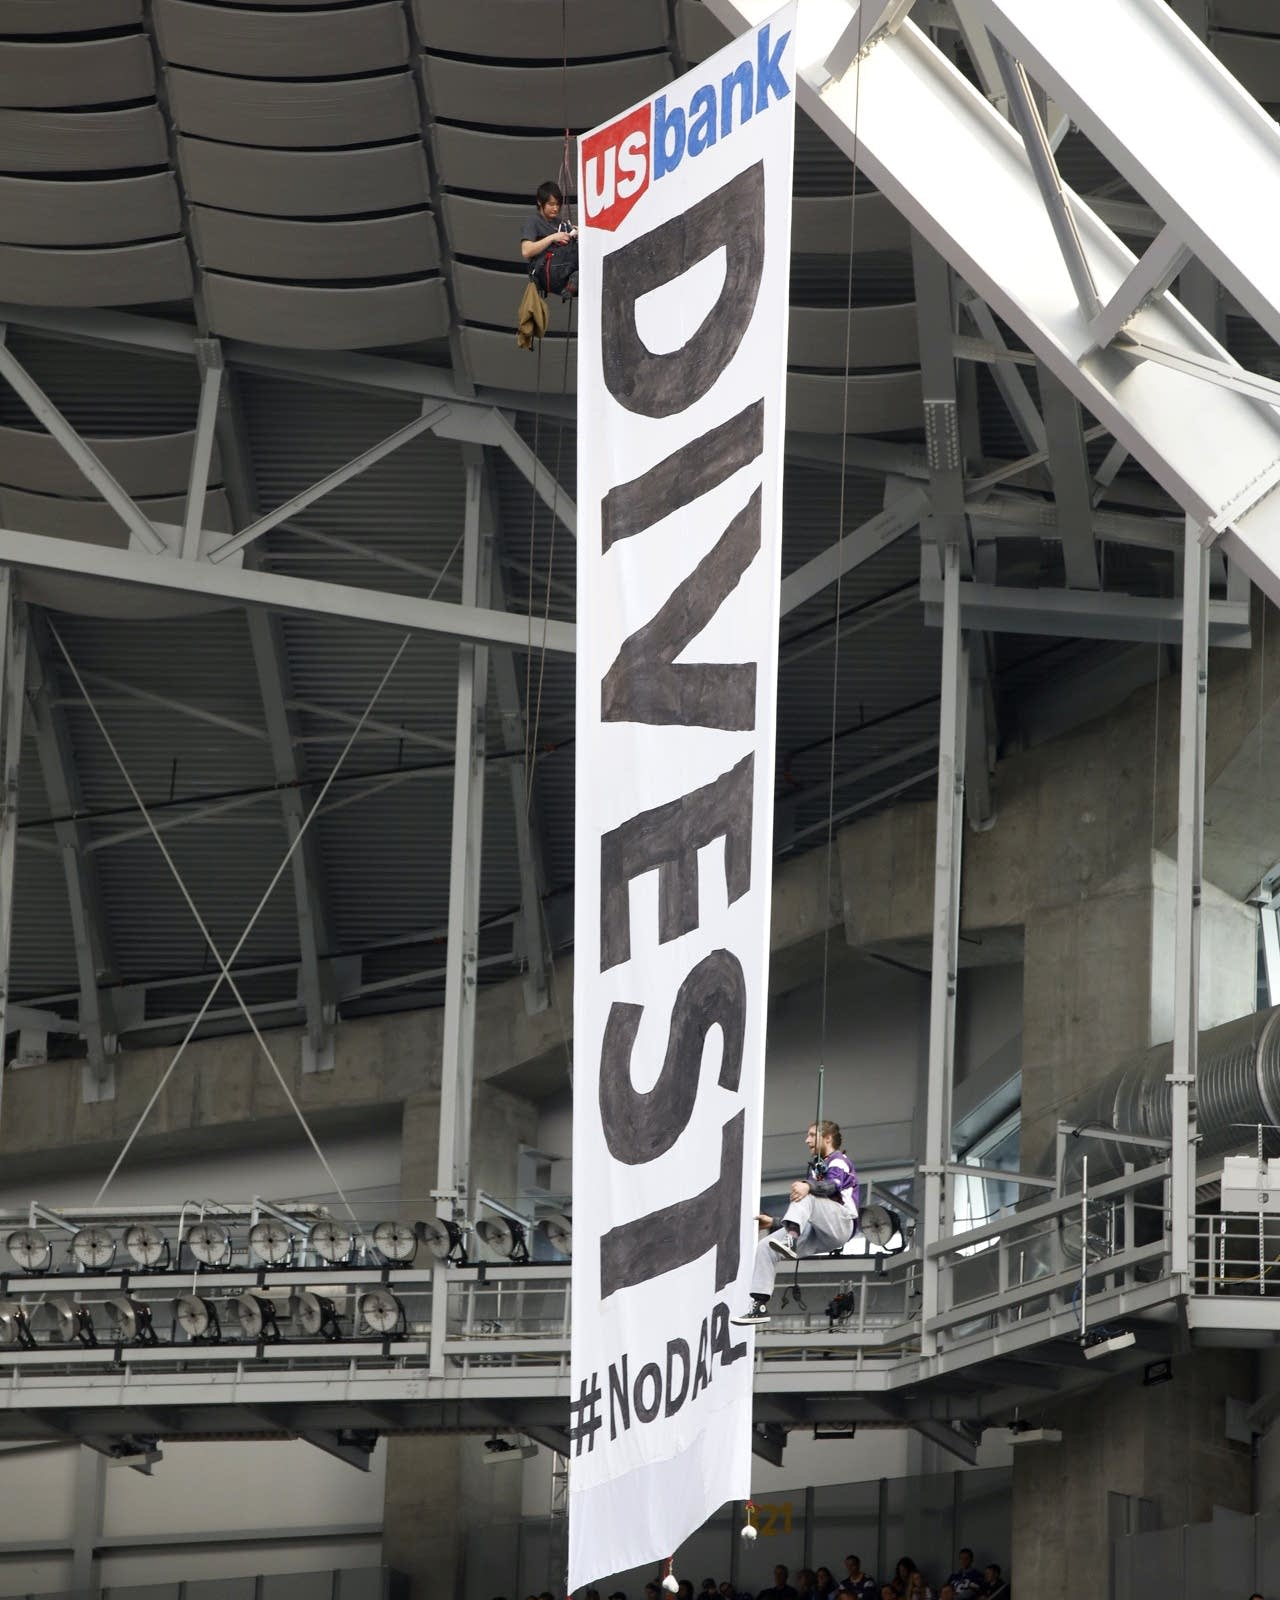 Protesters unfurl banner at Vikings game.